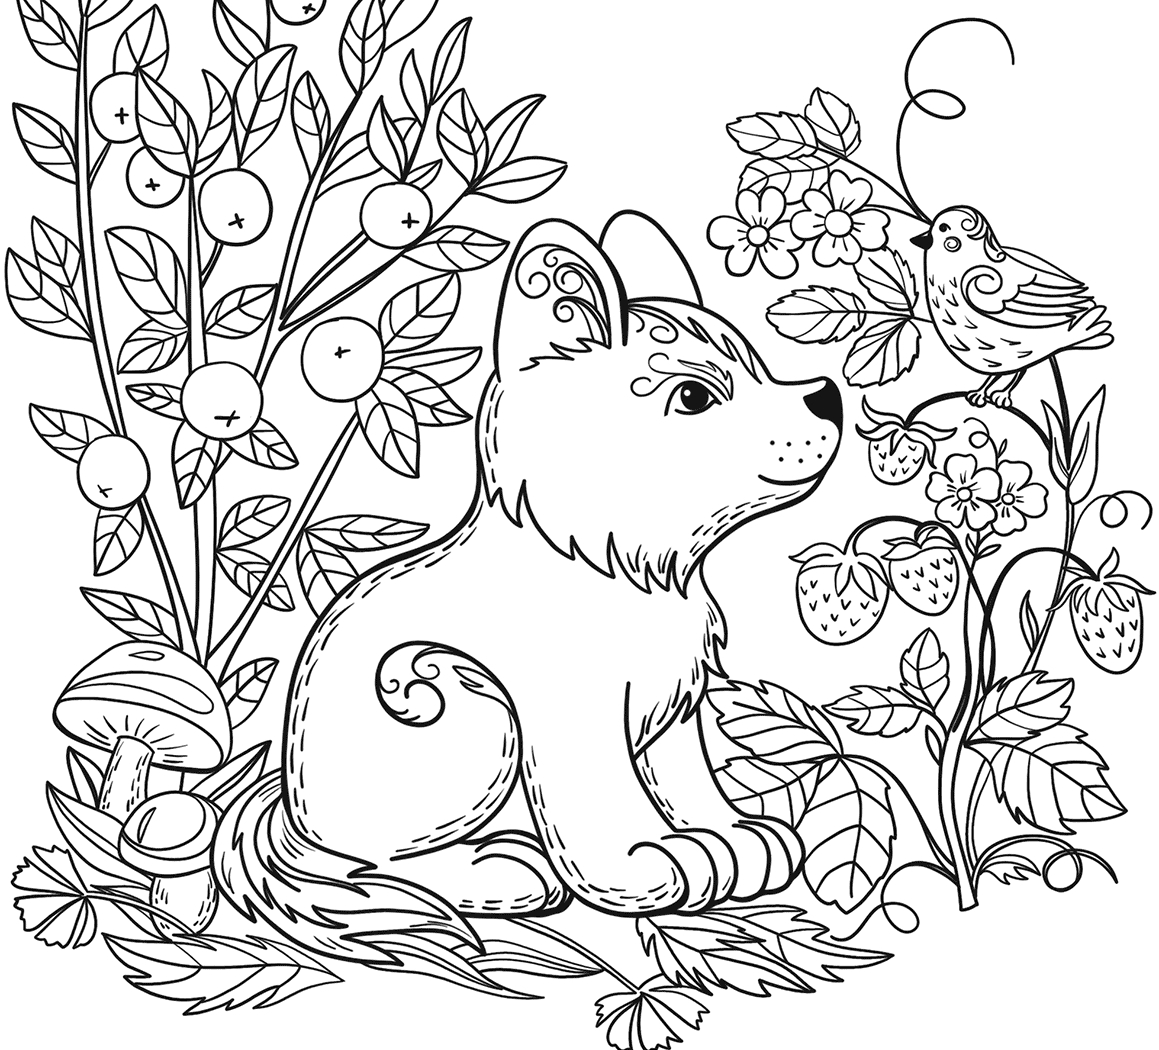 wild animal for coloring zoo animals coloring pages best coloring pages for kids coloring animal wild for